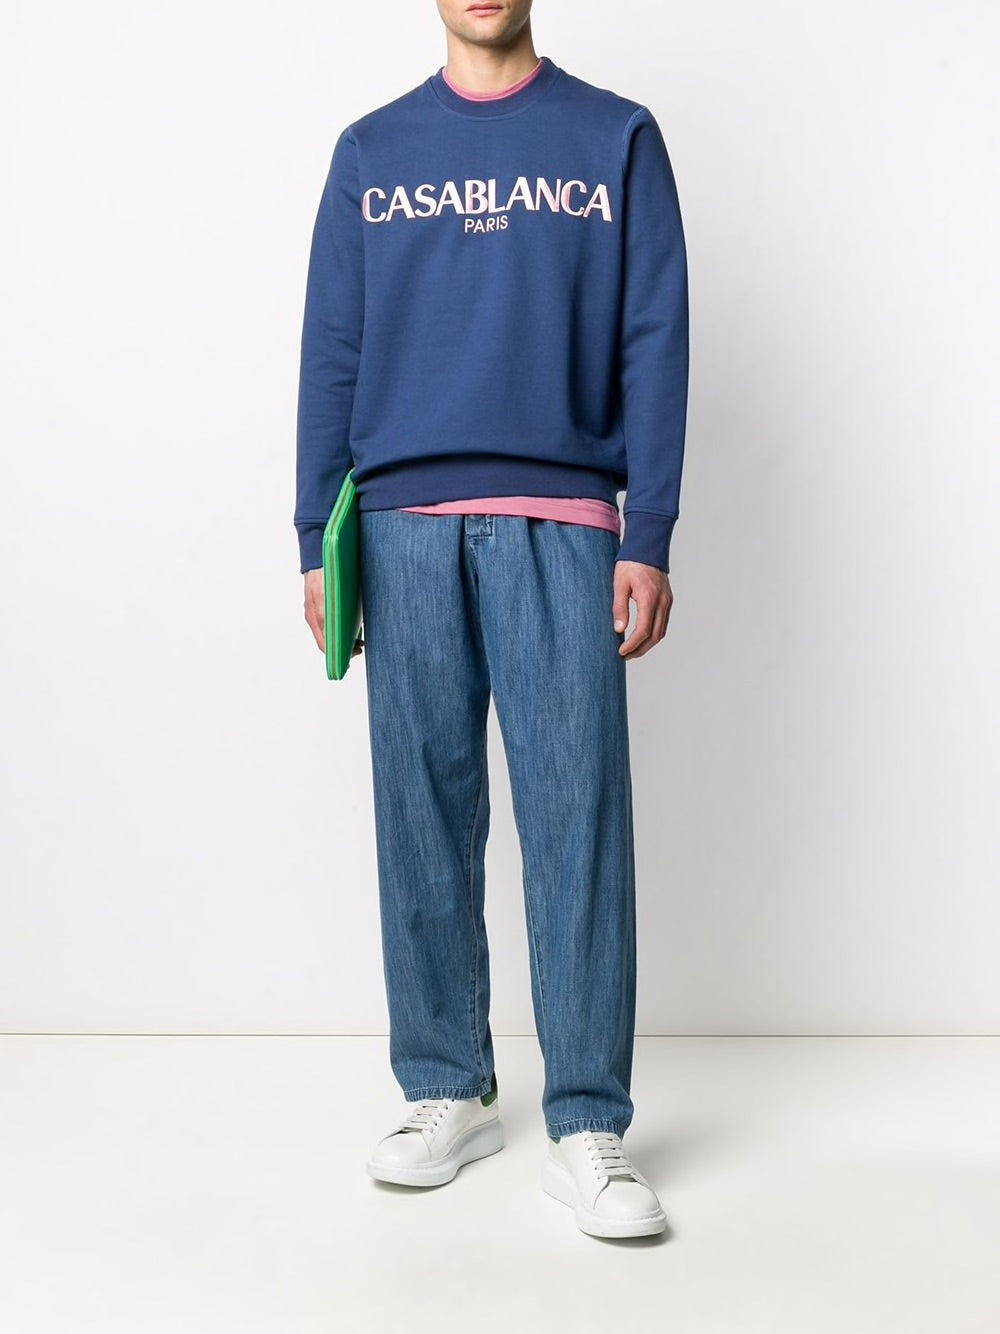 Casa Block-Logo Sweatshirt - Navy On Model